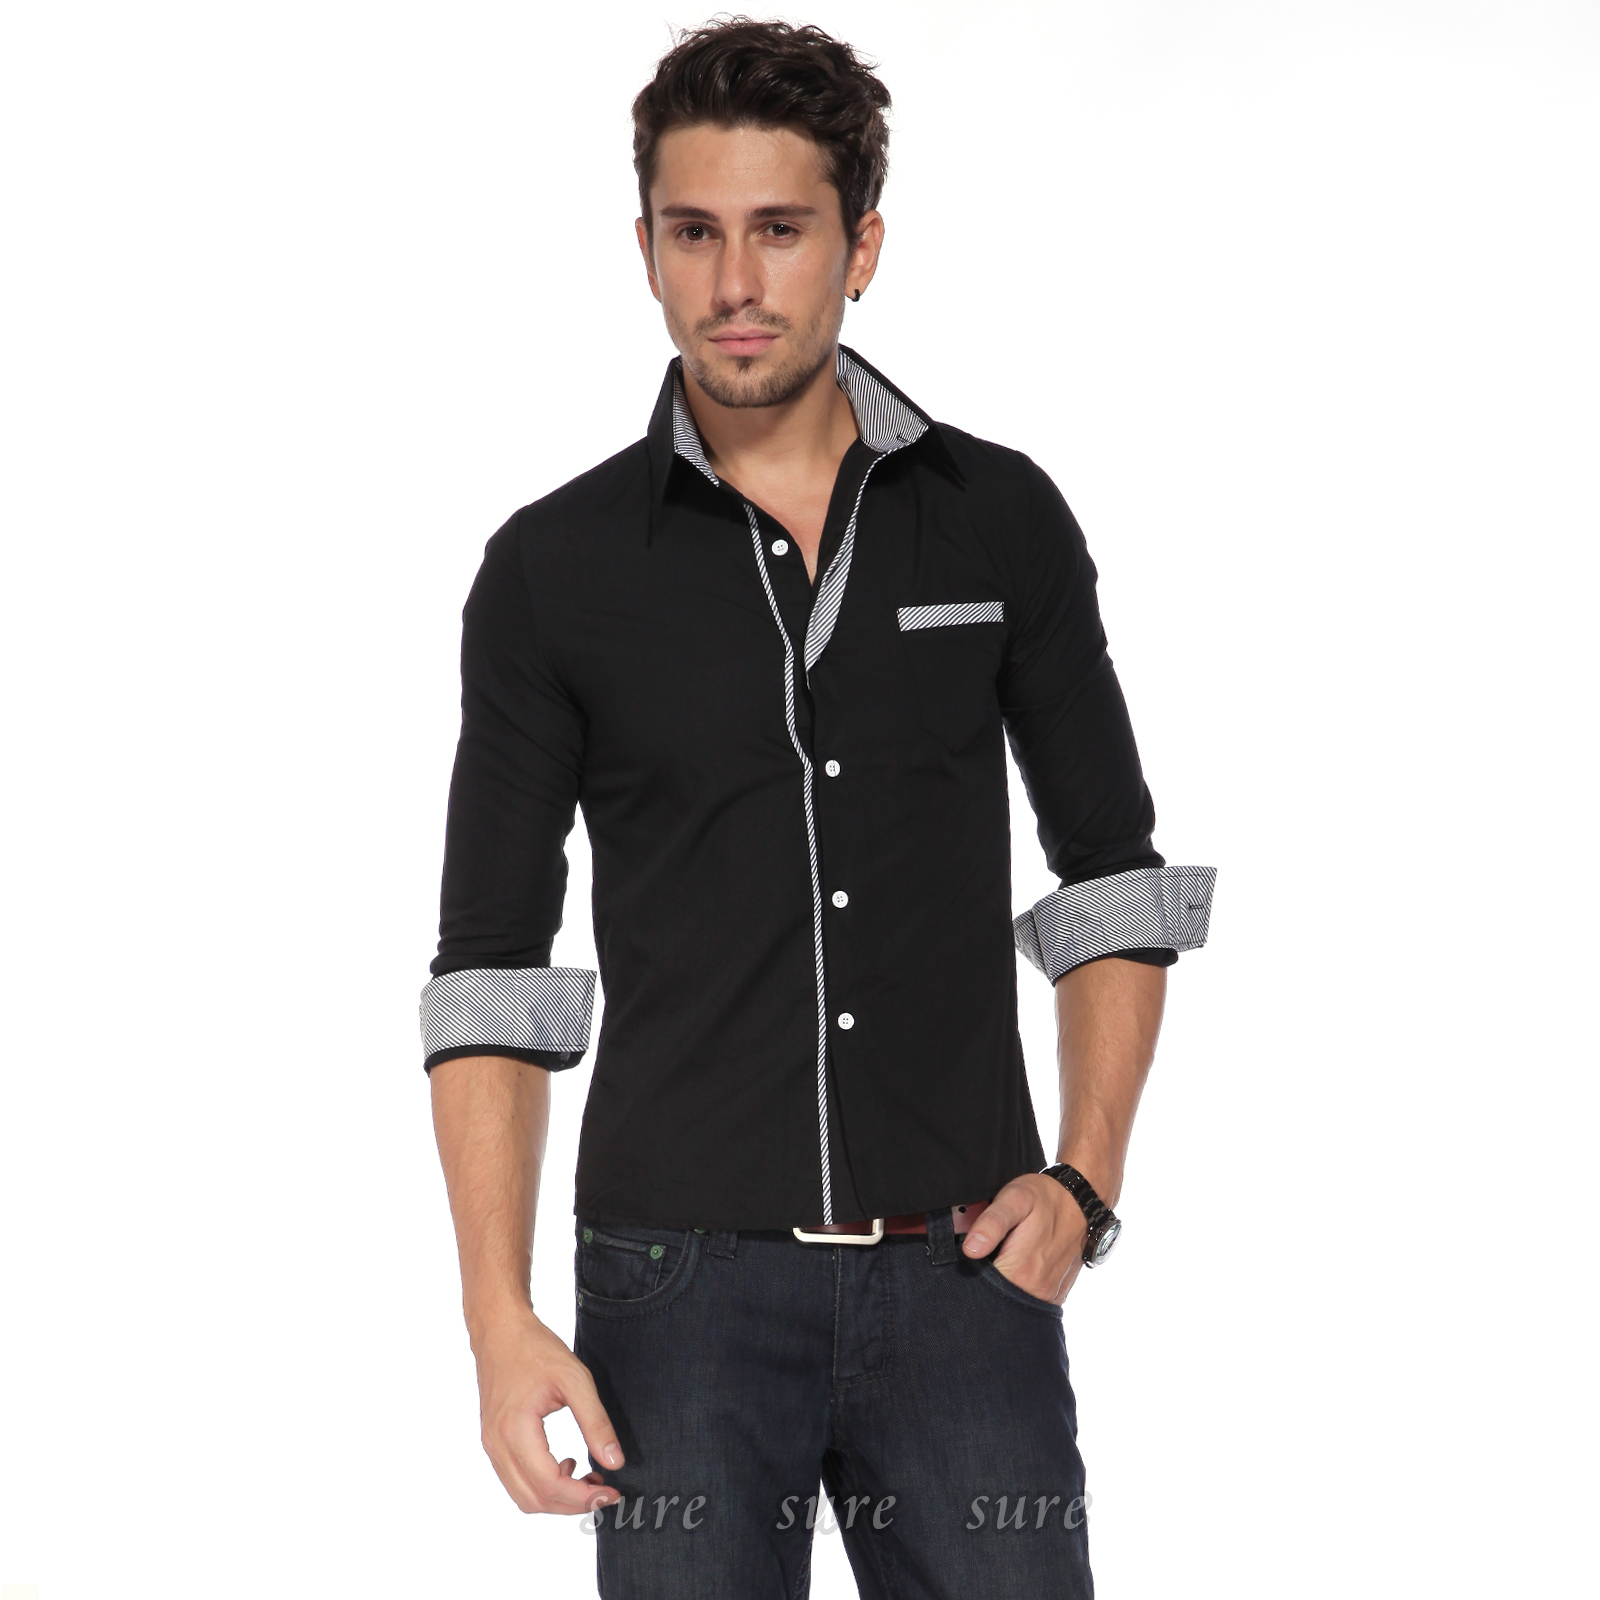 chemise homme slim veste jean costume garcon shirt raye t vetement xs l 4couleur ebay. Black Bedroom Furniture Sets. Home Design Ideas